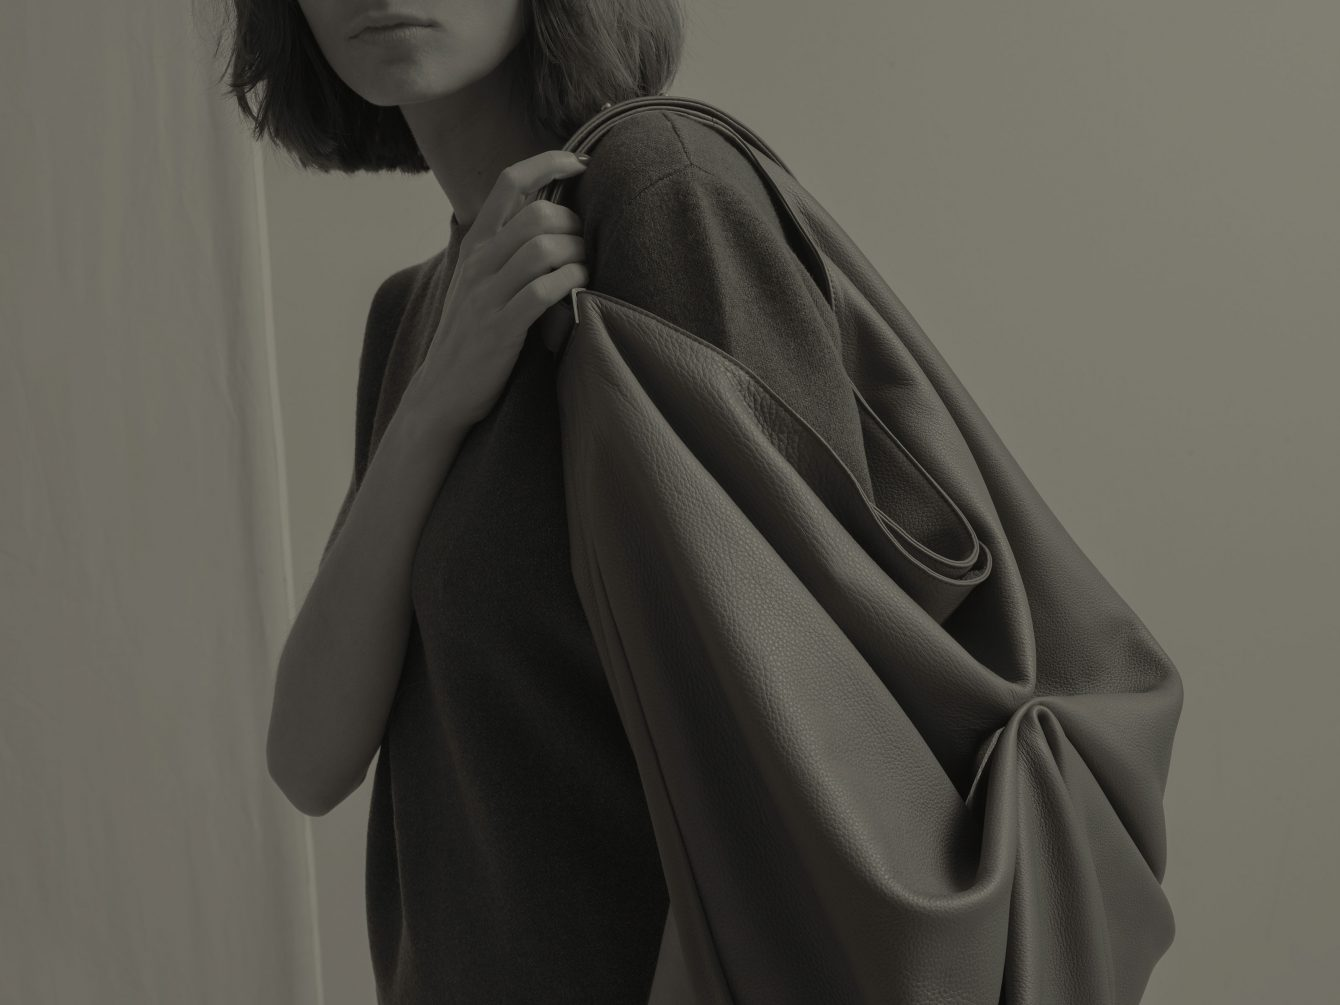 SACAR shoulder bag by Gerhardt Kellermann | TSATSAS